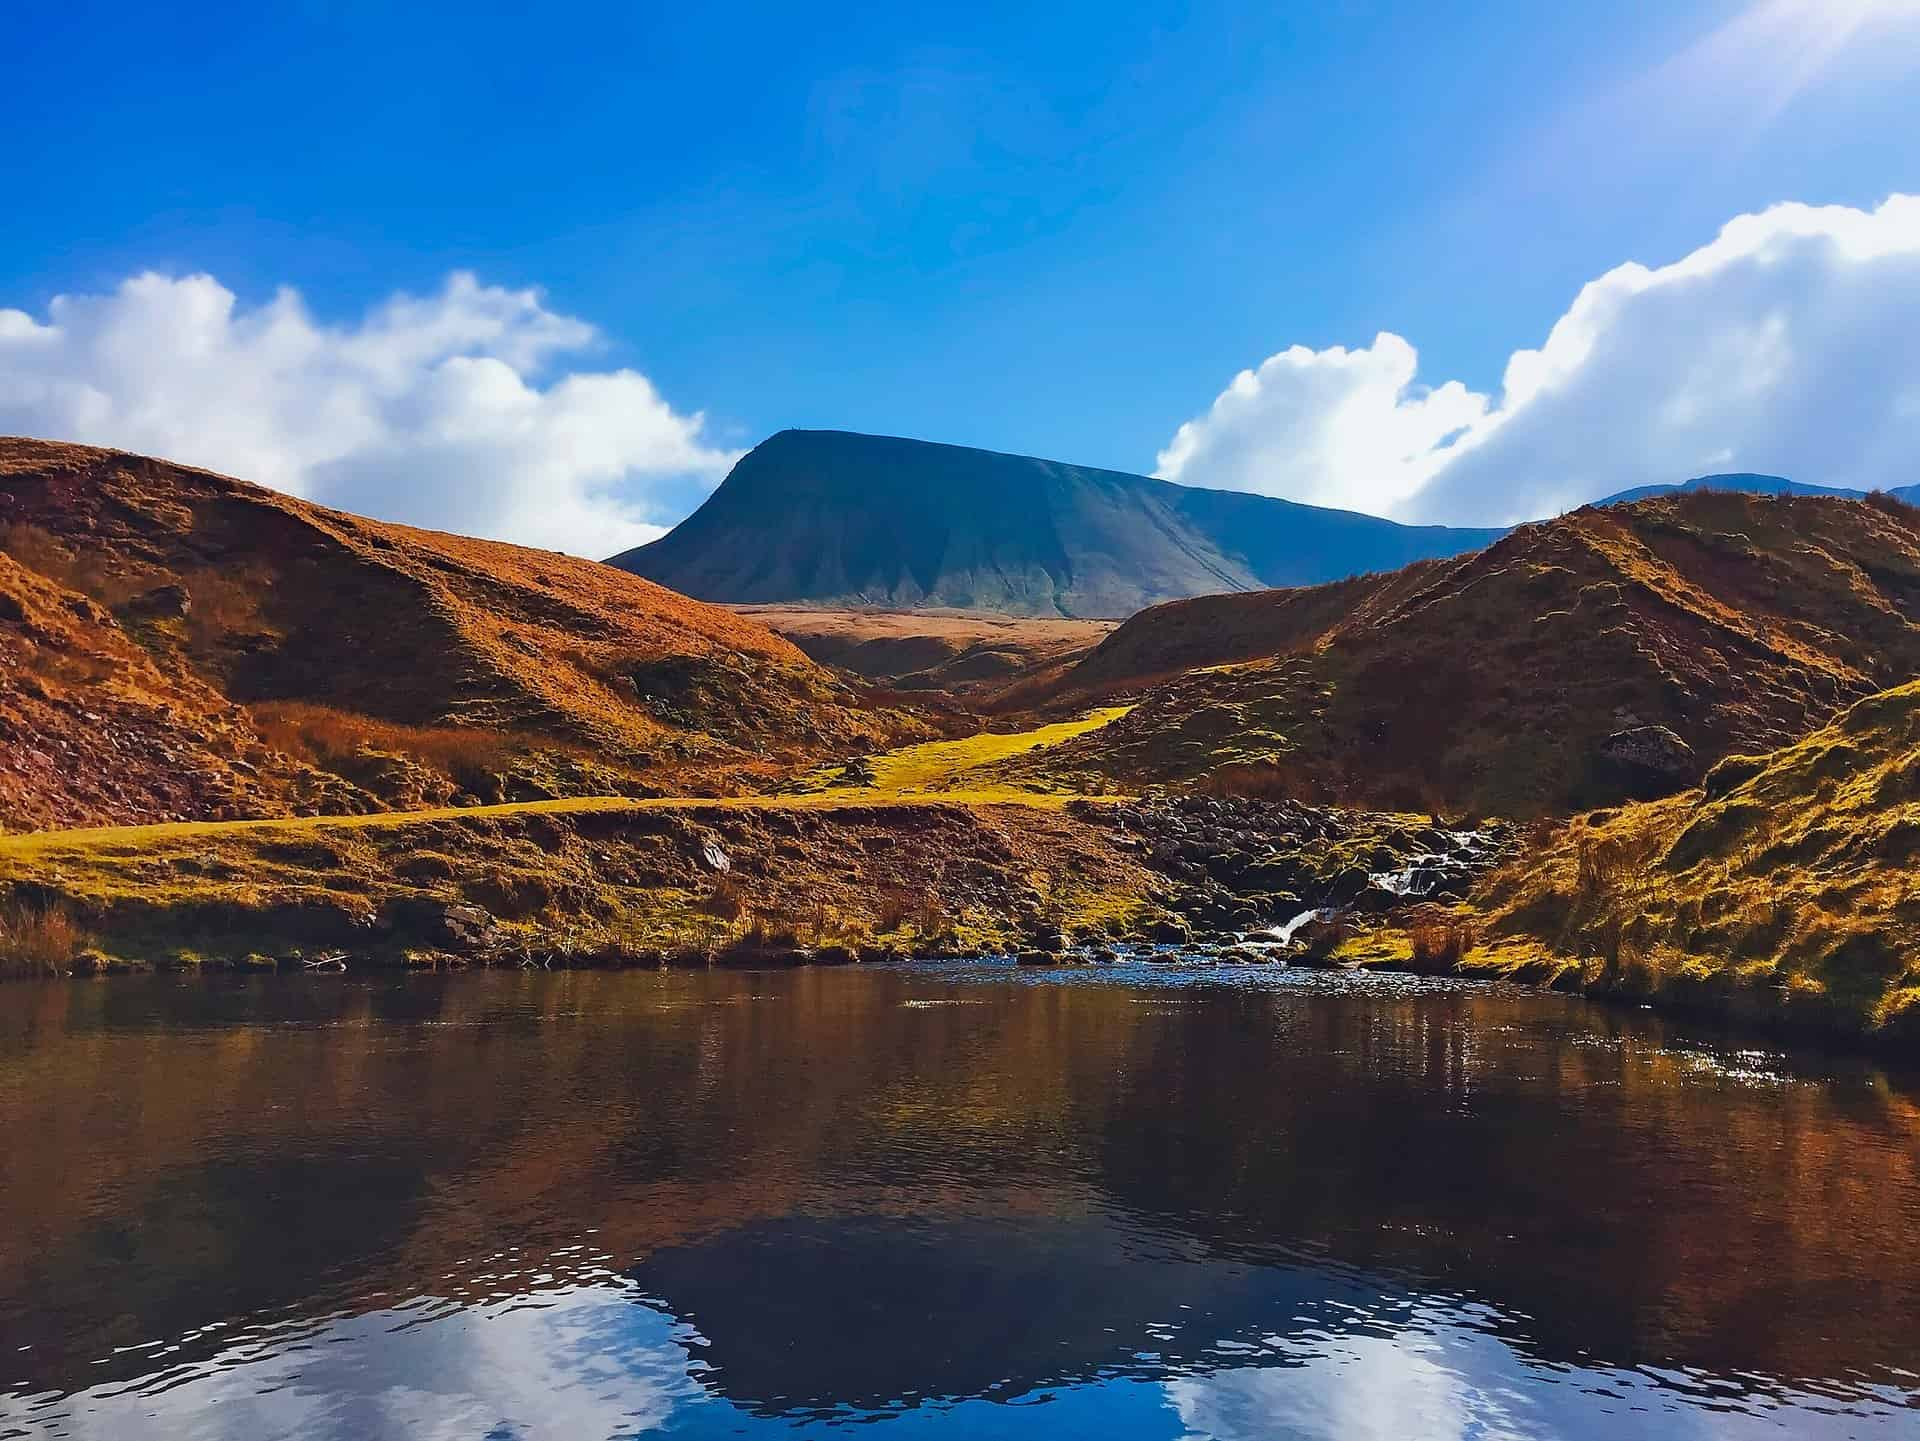 A landscape image of a lake and hills on a sunny day in the UK